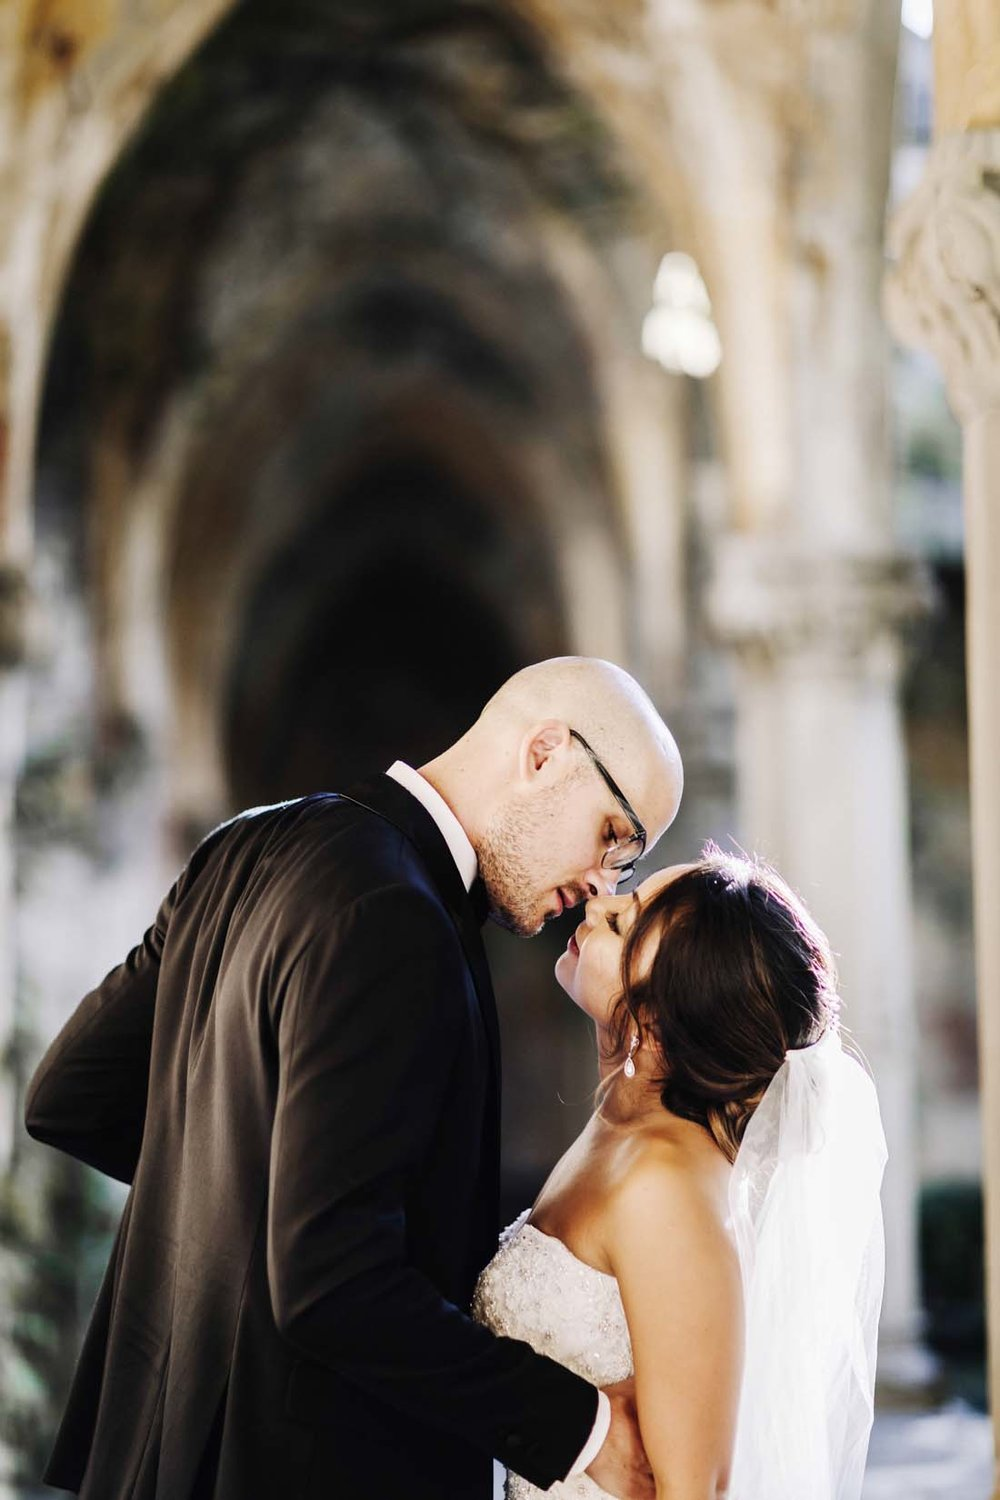 Wedding in Florence, Destination wedding photographers Rellini art studio